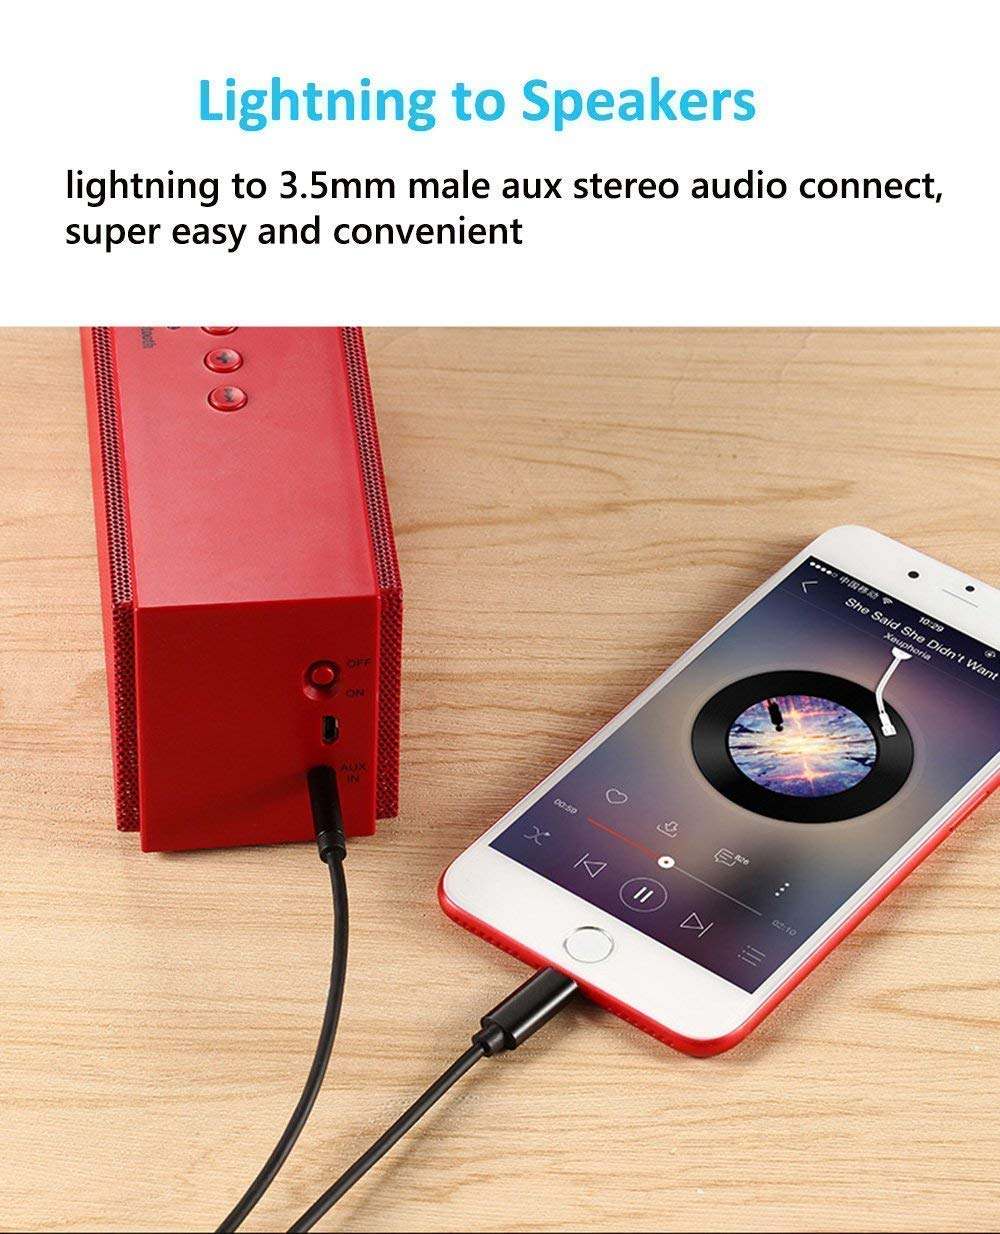 Aux Cord for Car Lighting to 3.5mm Aux Cable Compatible with iPhone XR//X//8Plus//8//iPad//iPod for Headphone//Speaker//Home Stereo